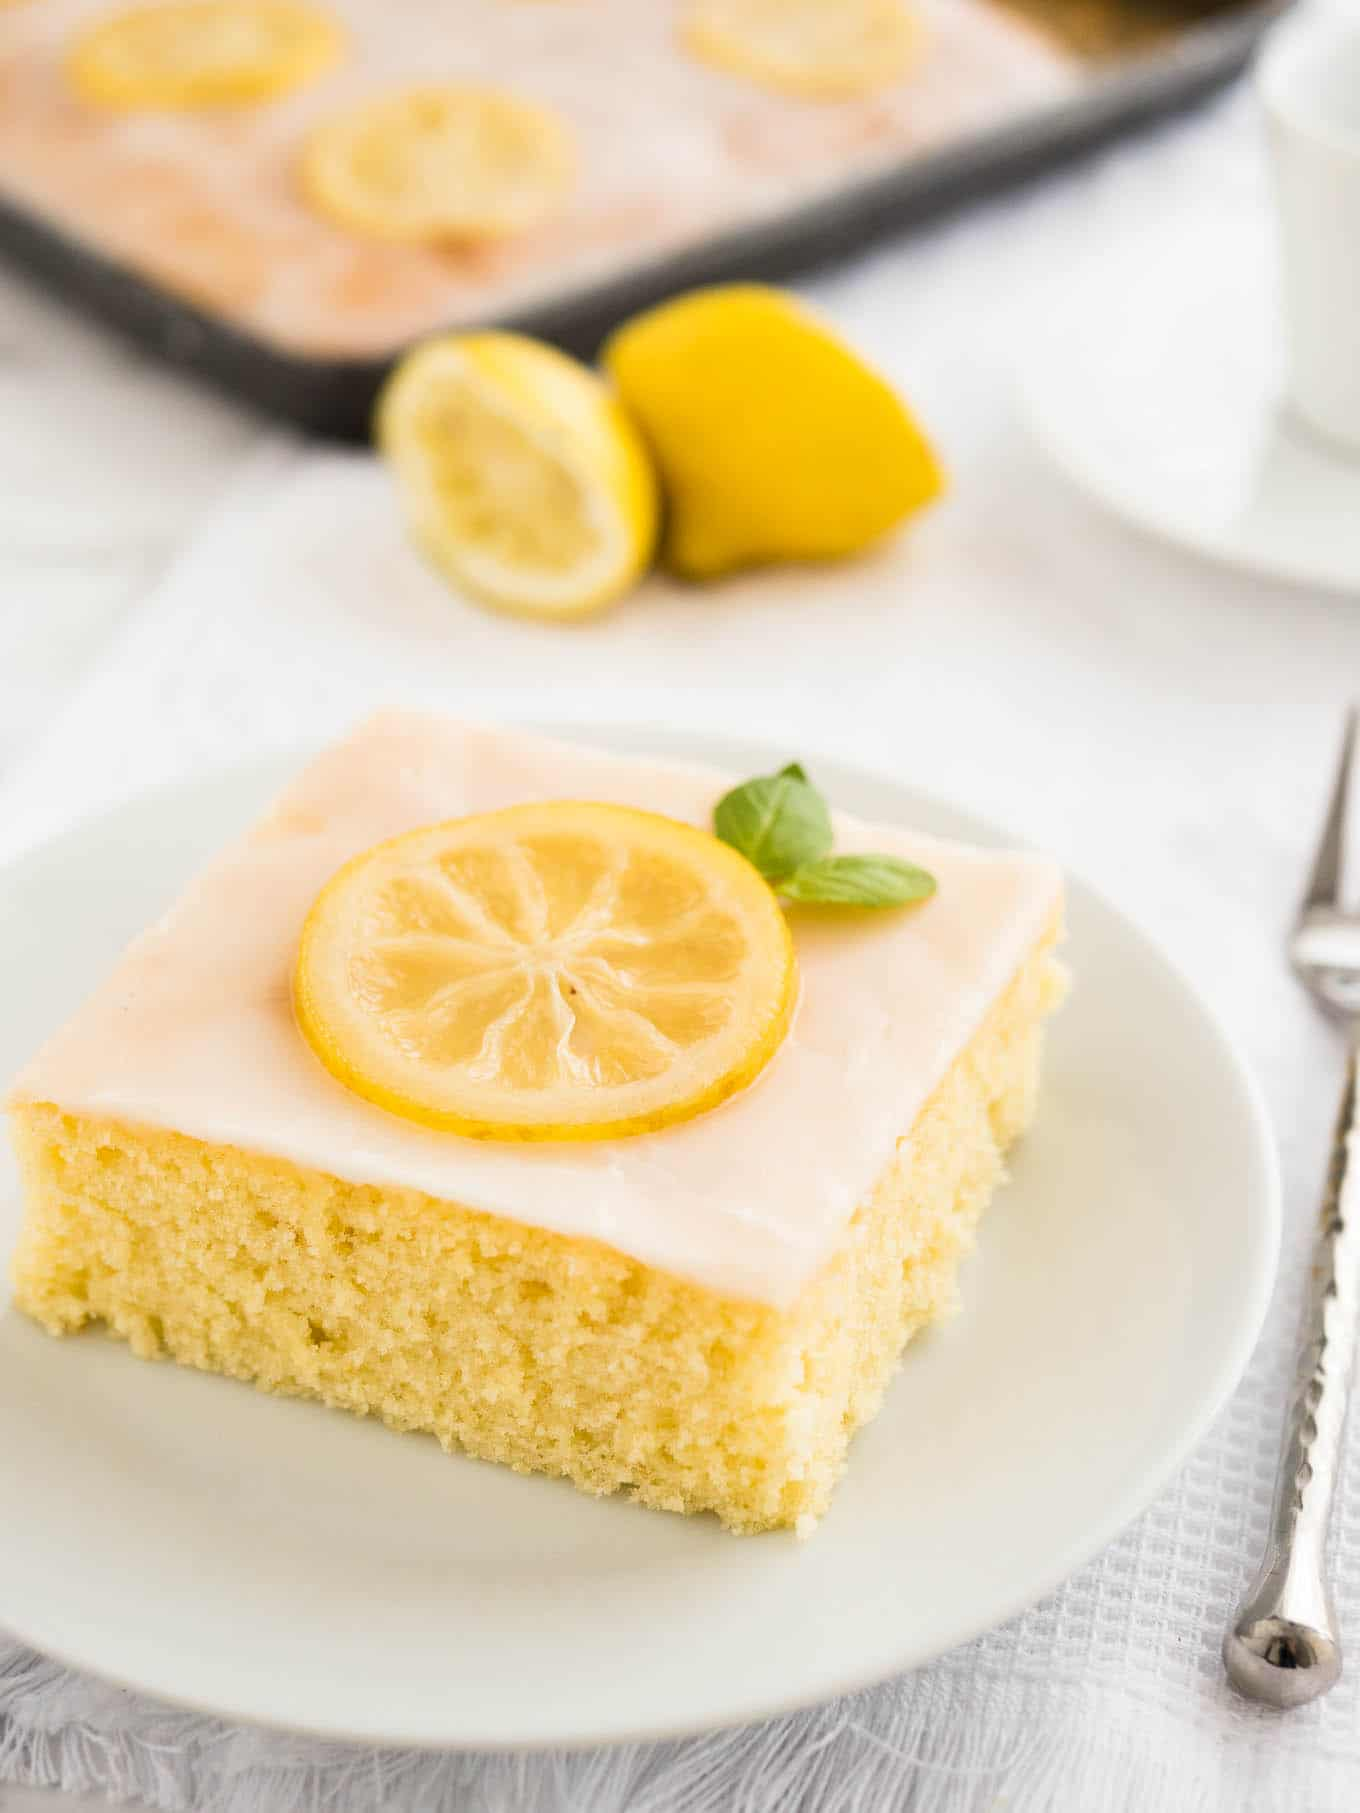 Layered Lemon Sheet Cake